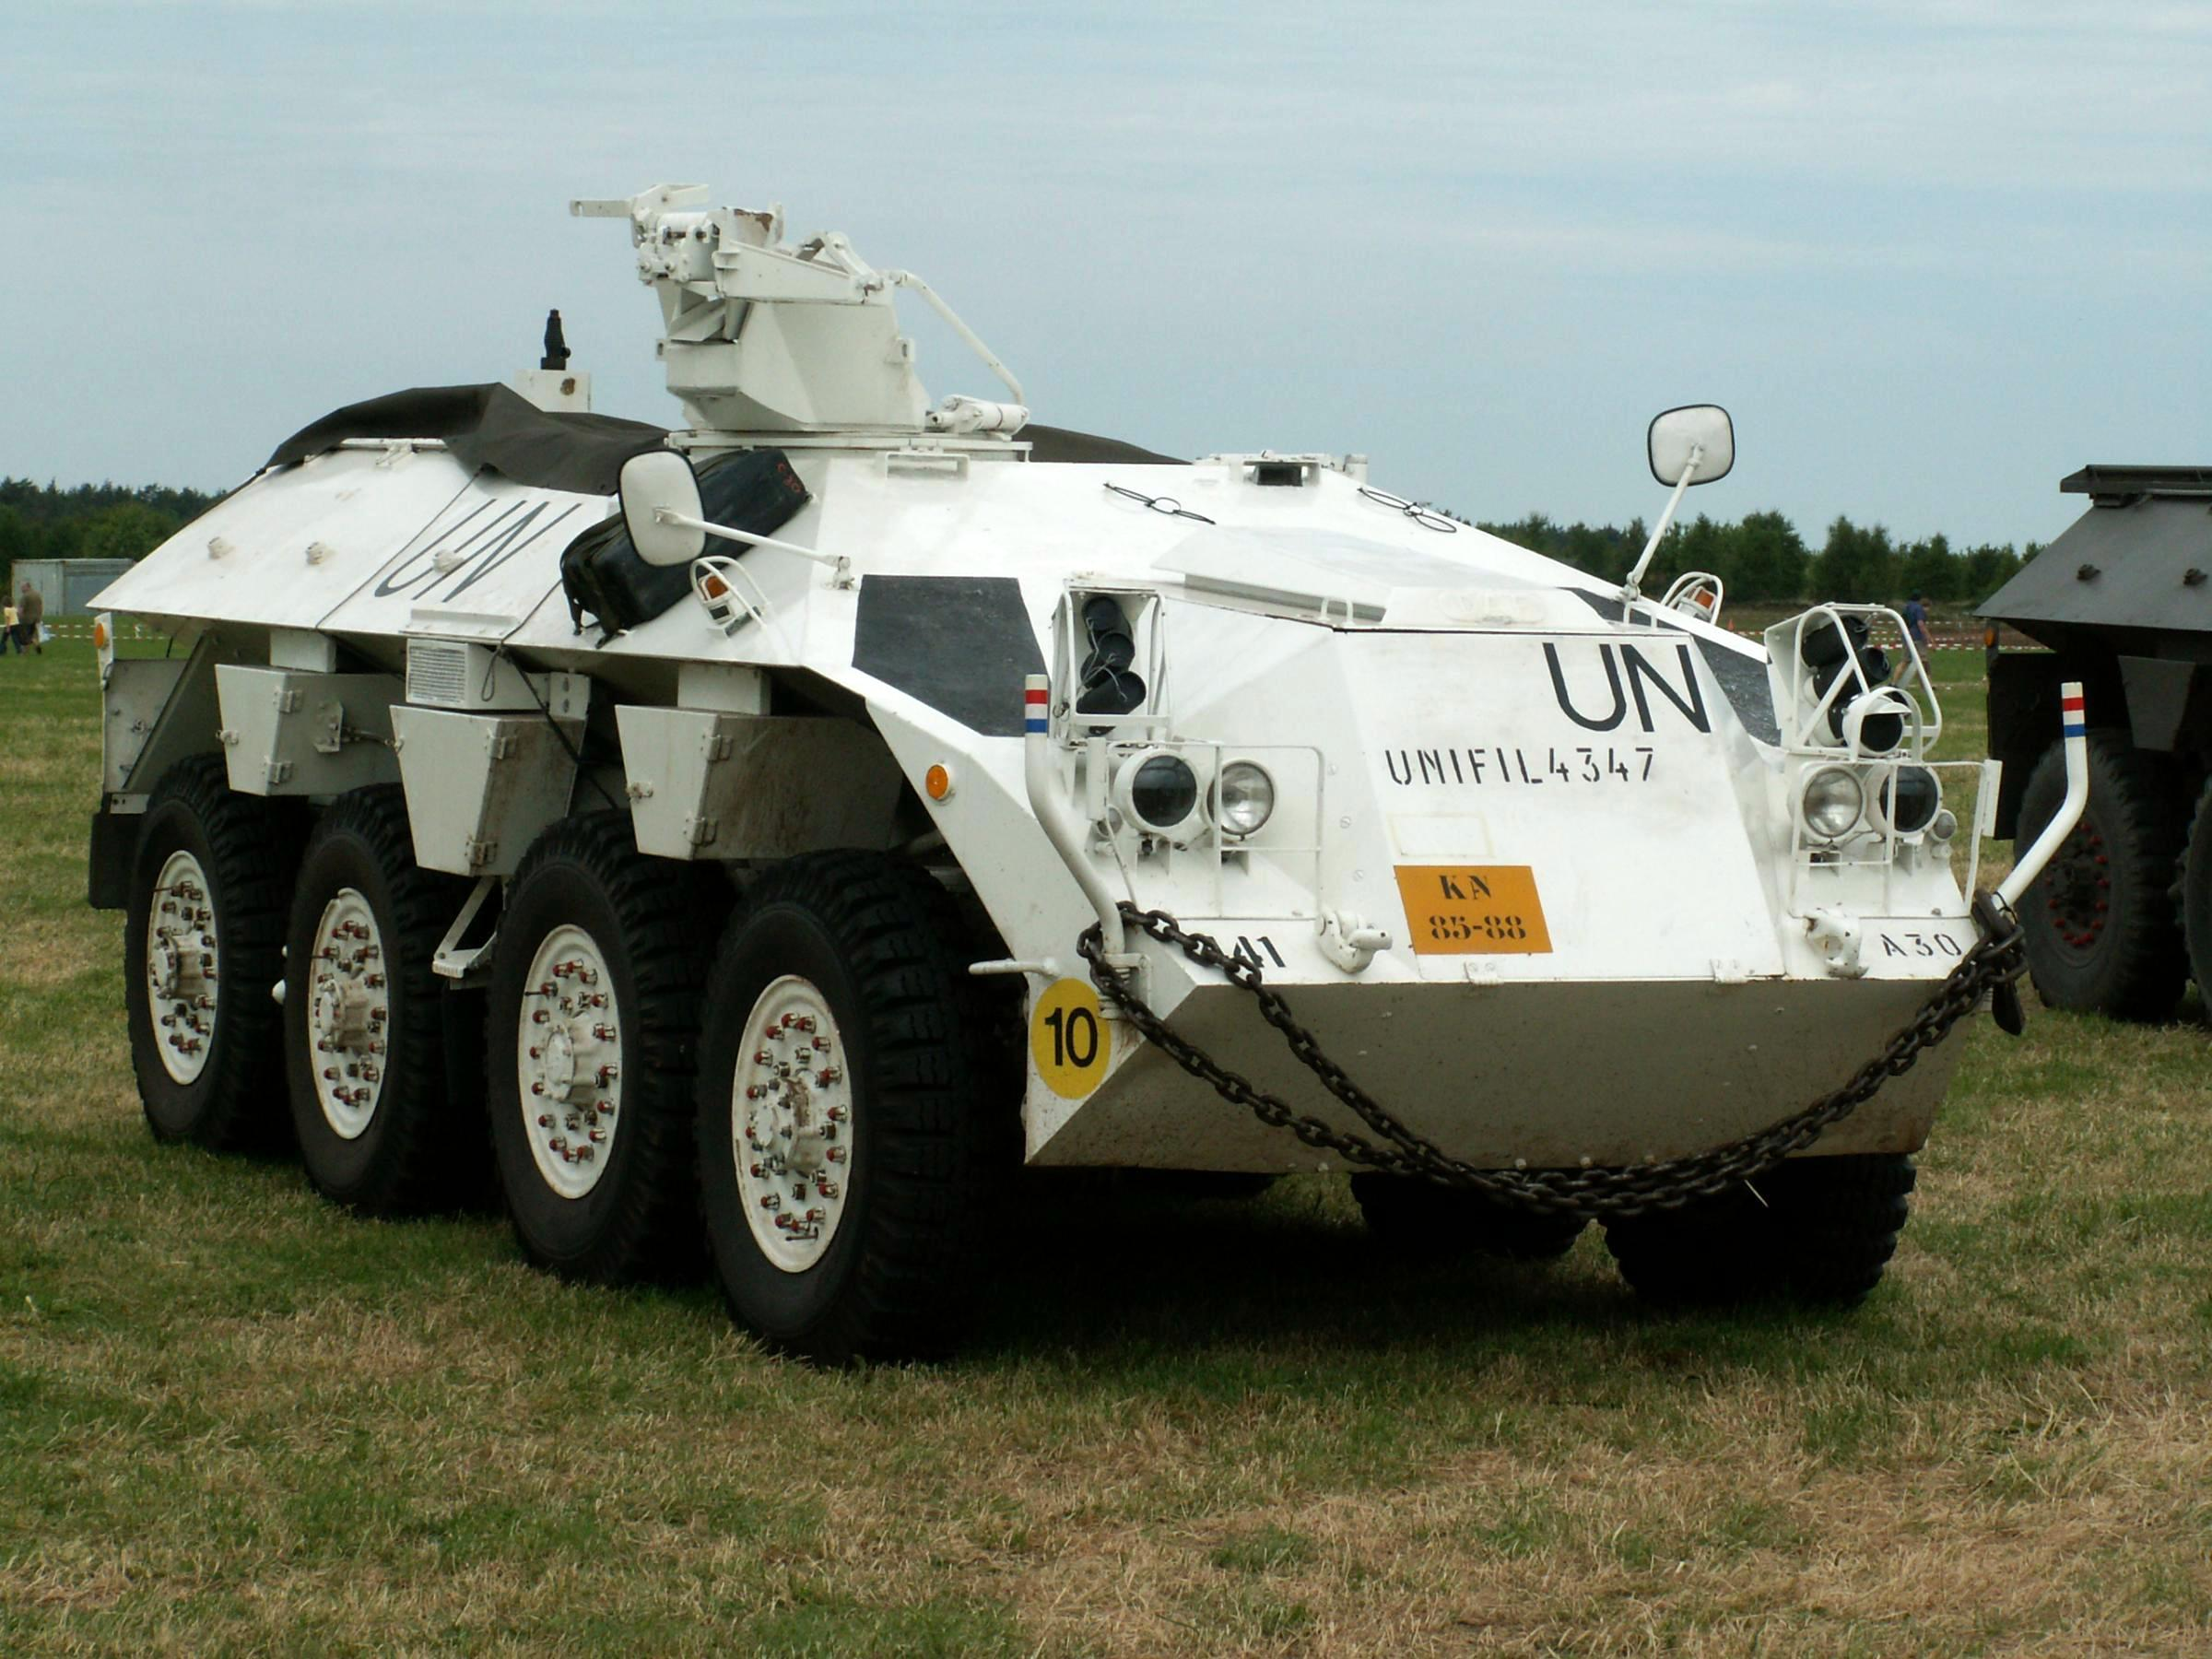 1000+ images about Military vehicles on Pinterest ...